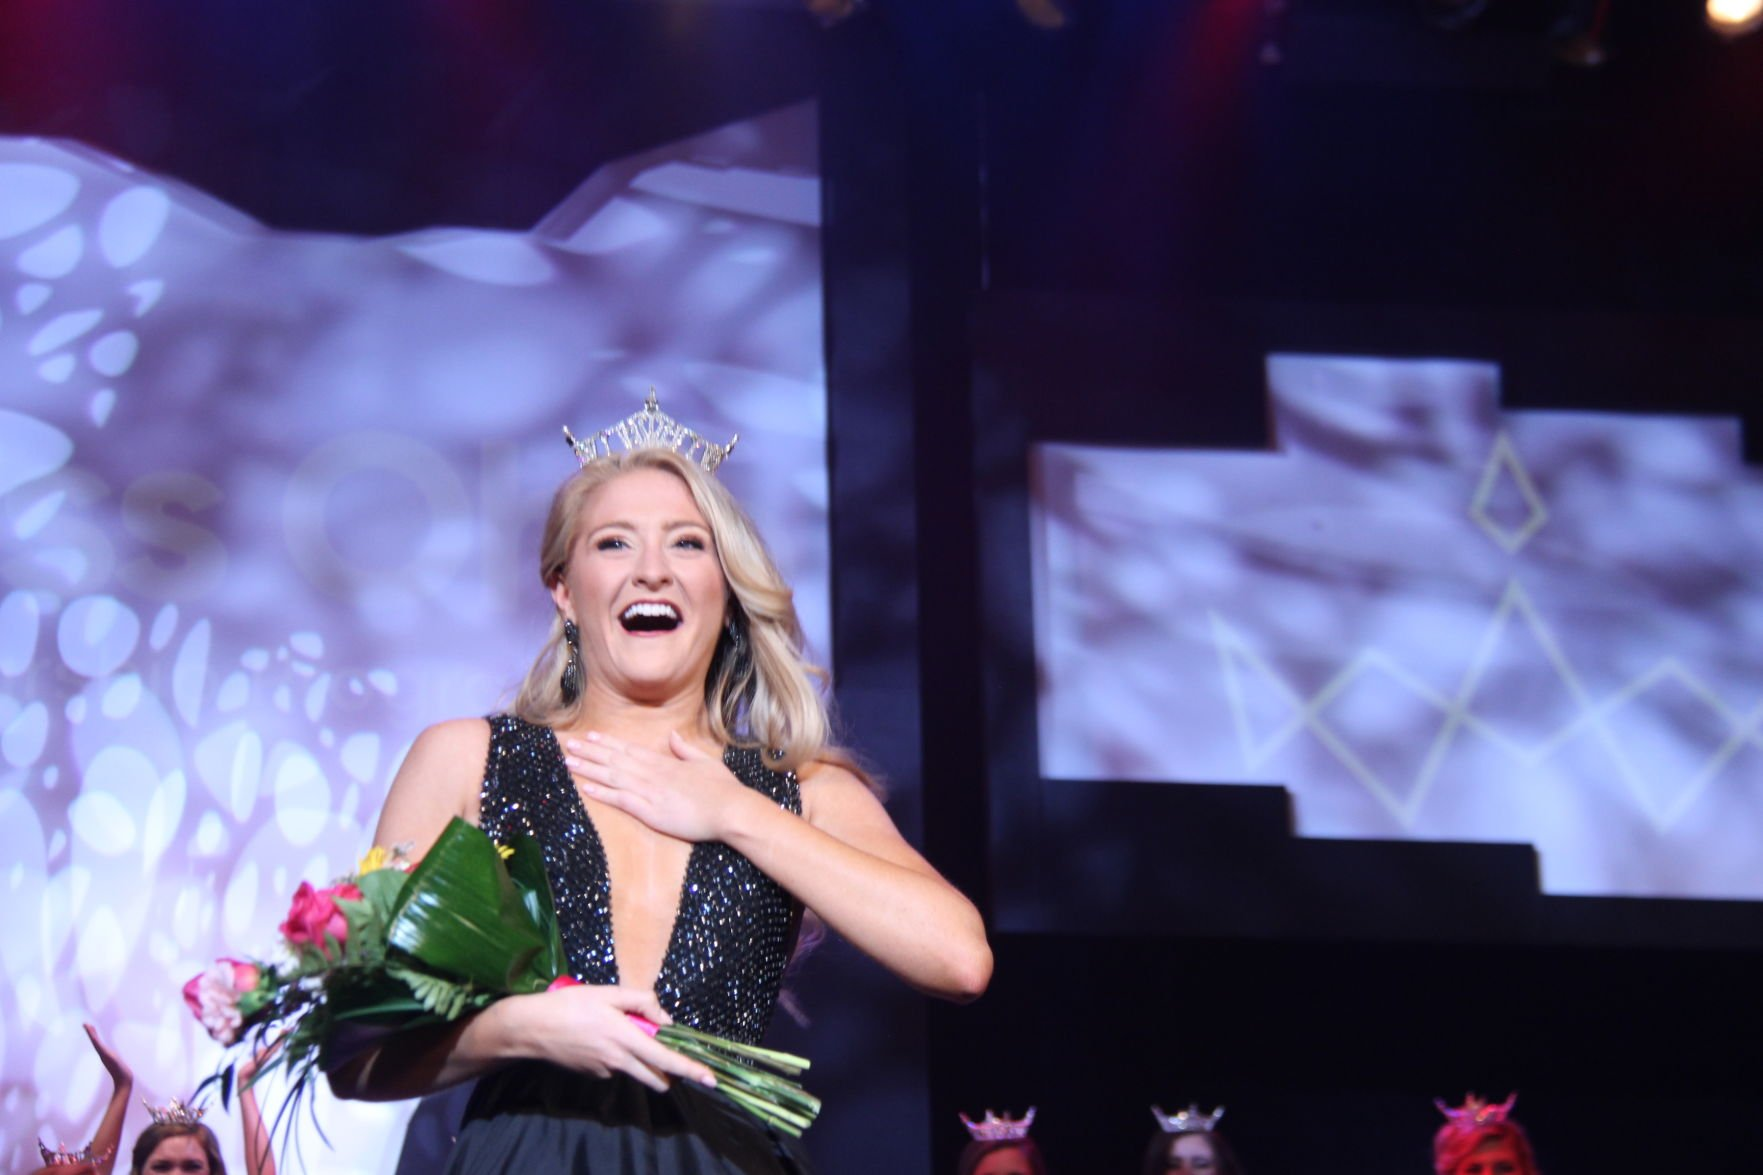 Ohio State graduate wins Miss Ohio talent competition